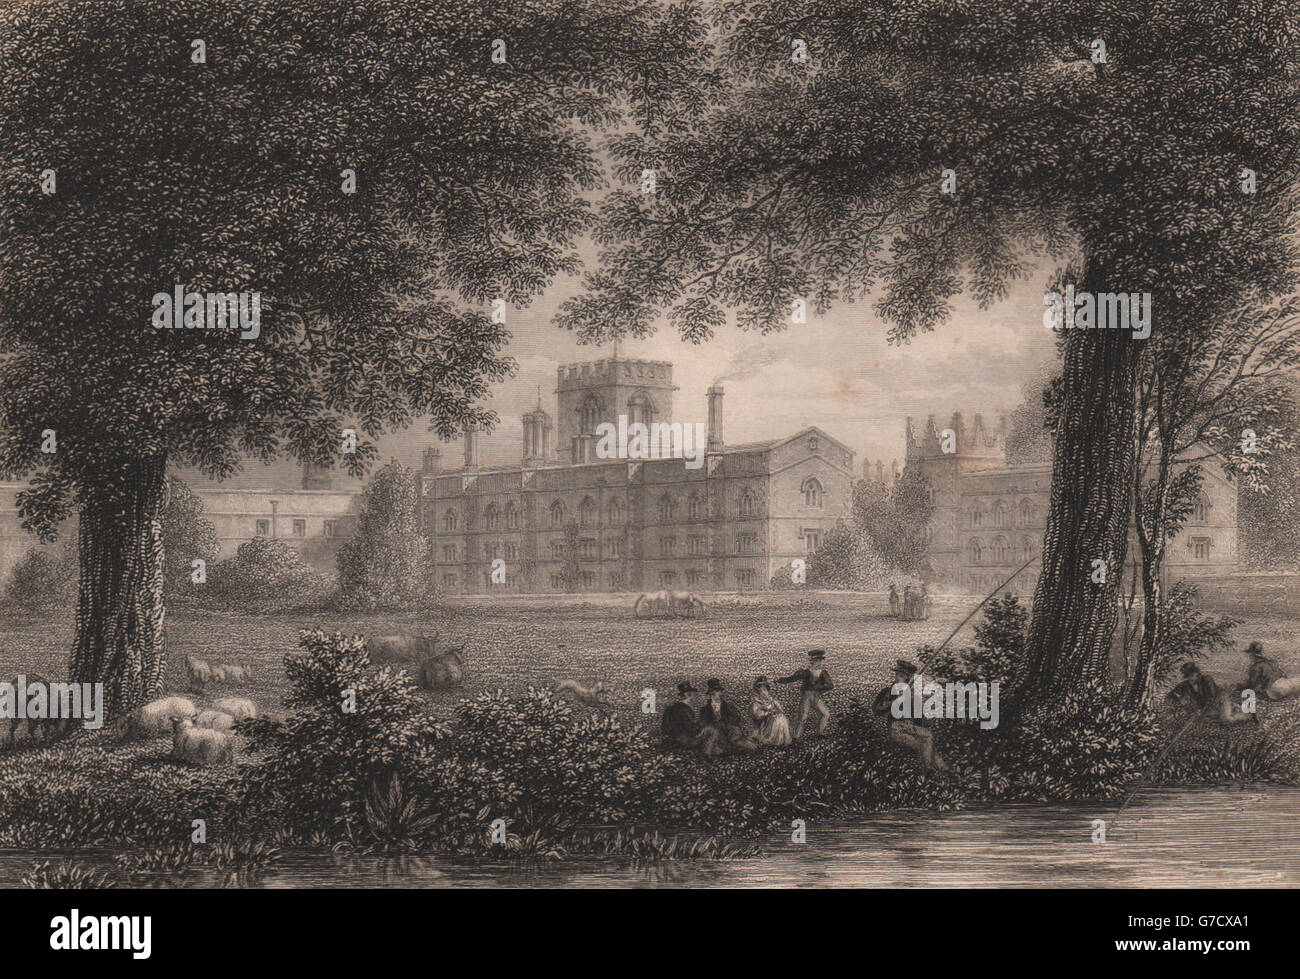 JESUS COLLEGE. from the Meadows, Cambridge. LE KEUX, antique print 1841 - Stock Image